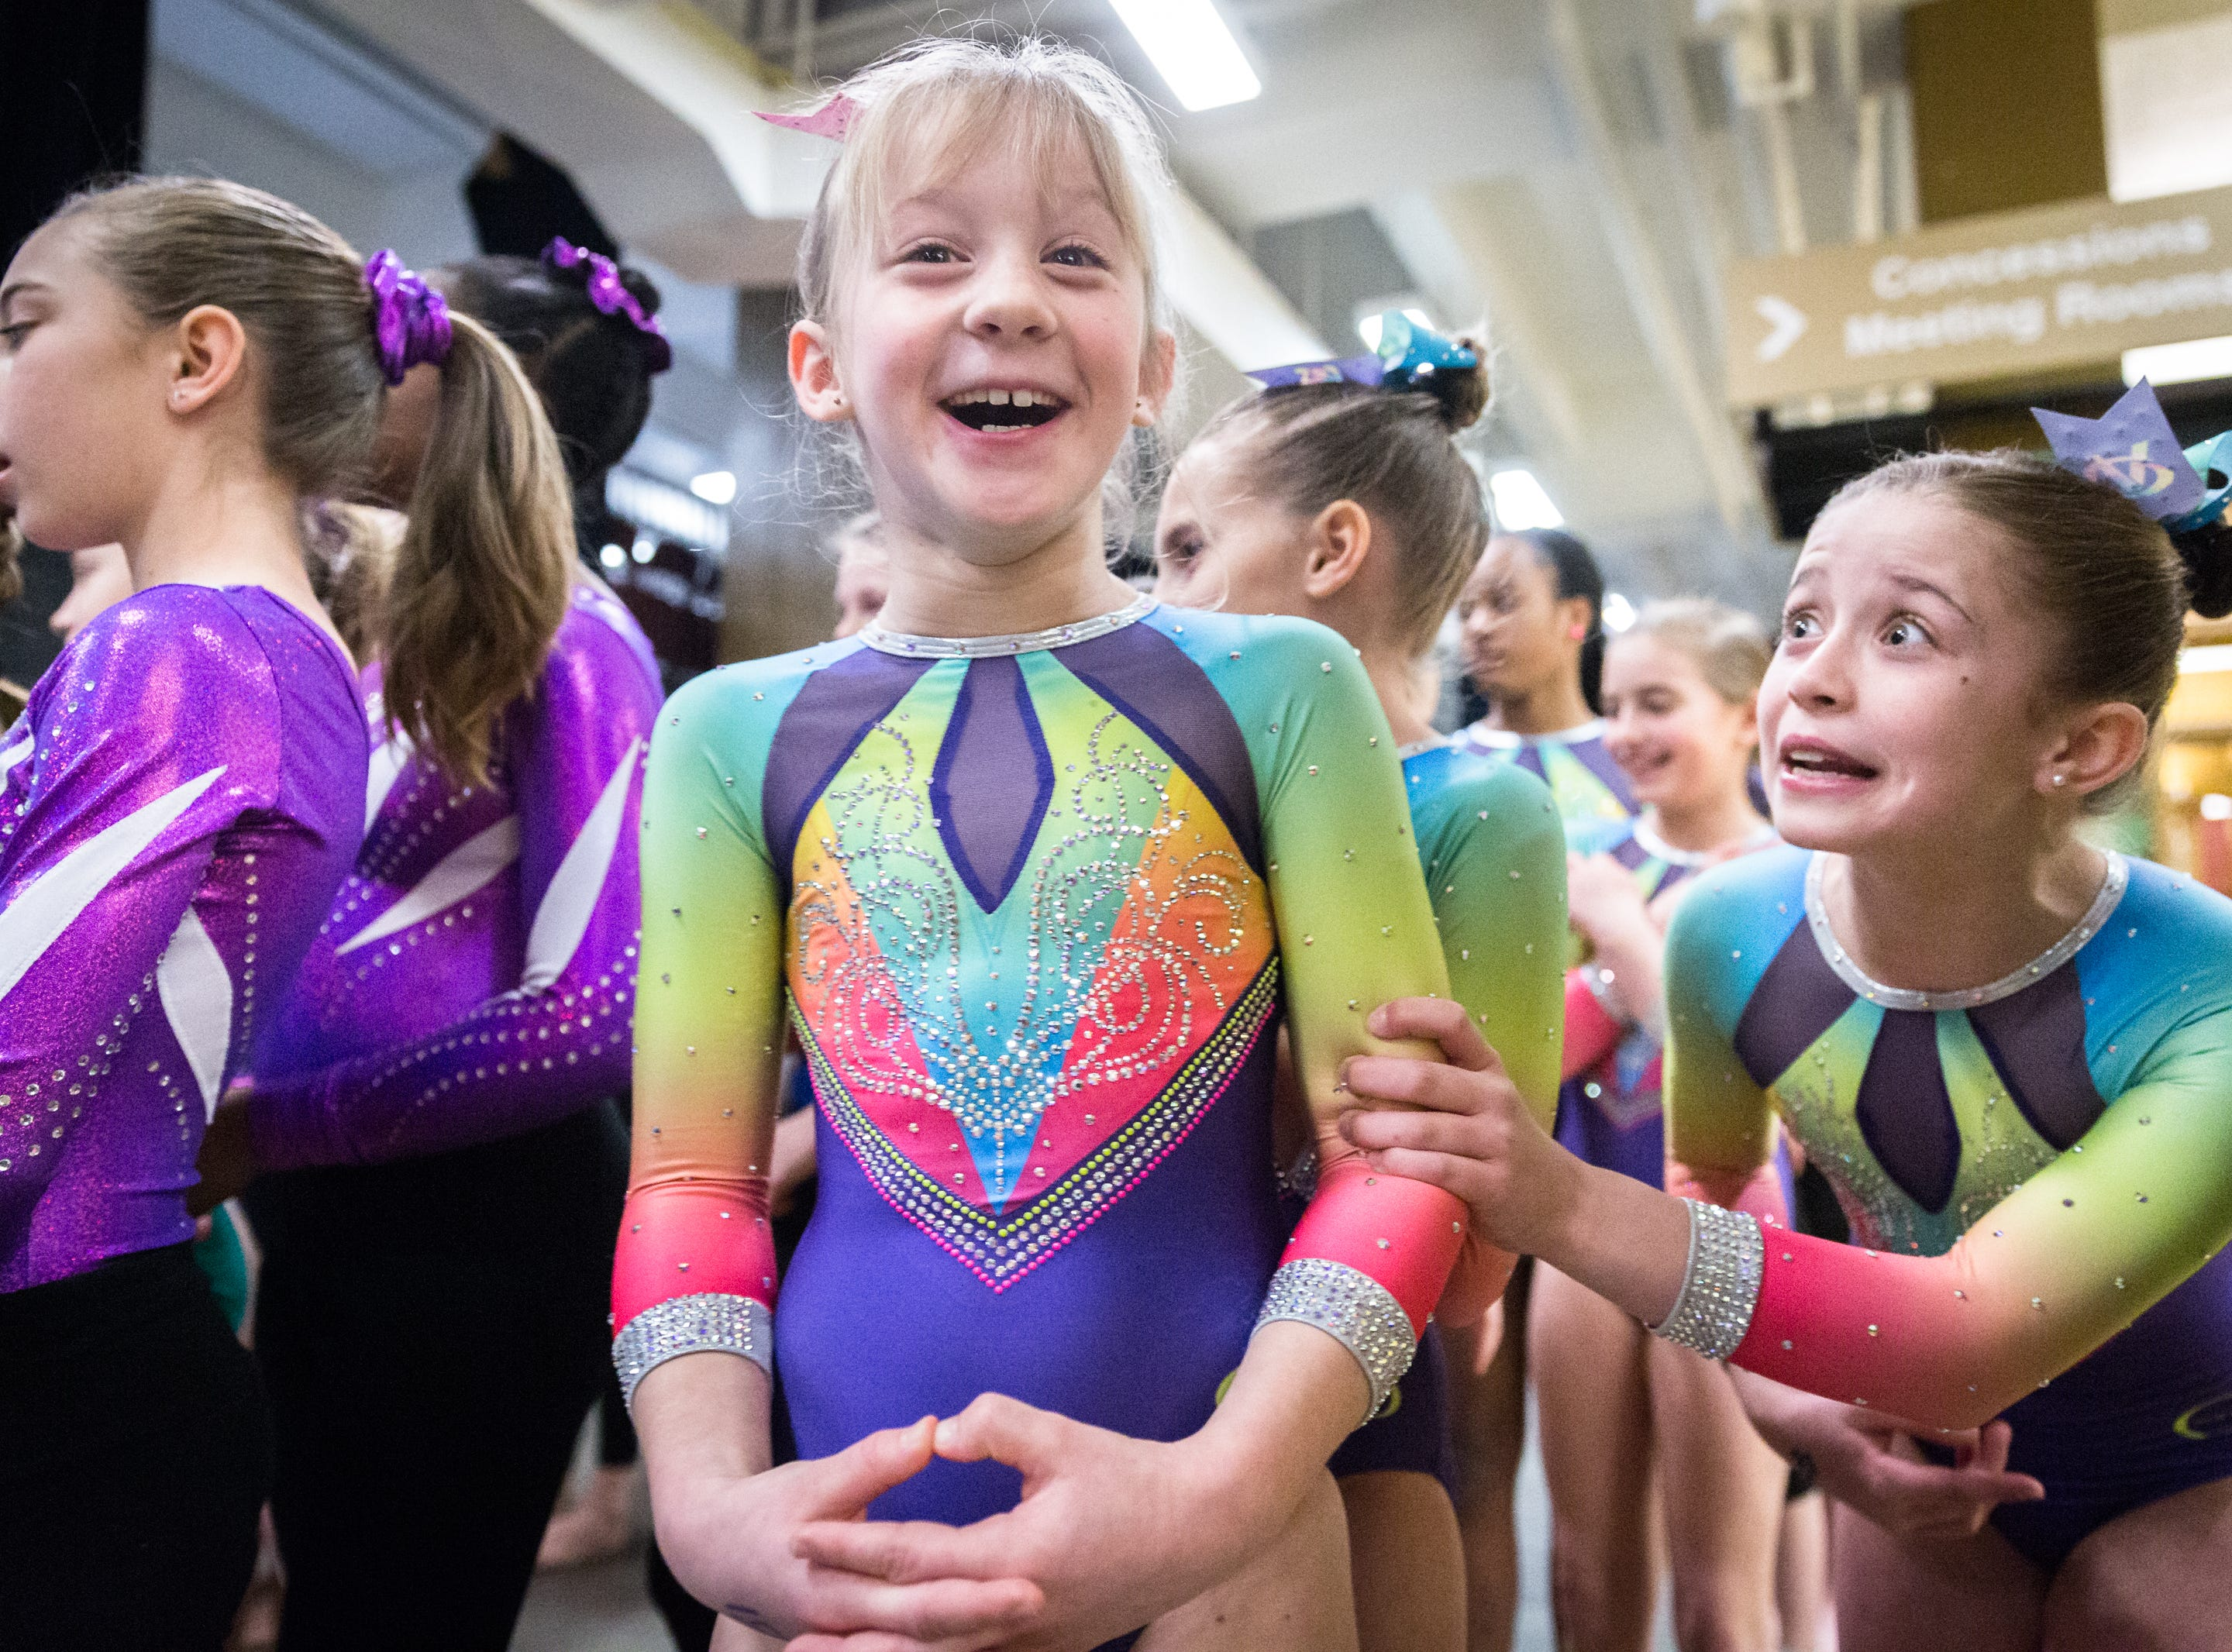 """Payton McNally, 10, of Premiere Athletics based in Knoxville, Tennessee, grabs the arm of teammate Lily Hughes, 9, asking her, """"are you scared?"""" before their team is announced and escorted onto the floor before competition begins at the Gymnastics Gala meet at the U.S Cellular Center in Asheville, Saturday, January 6, 2017. Teams came from Florida, Georgia, North Carolina, South Carolina, and Tennessee."""